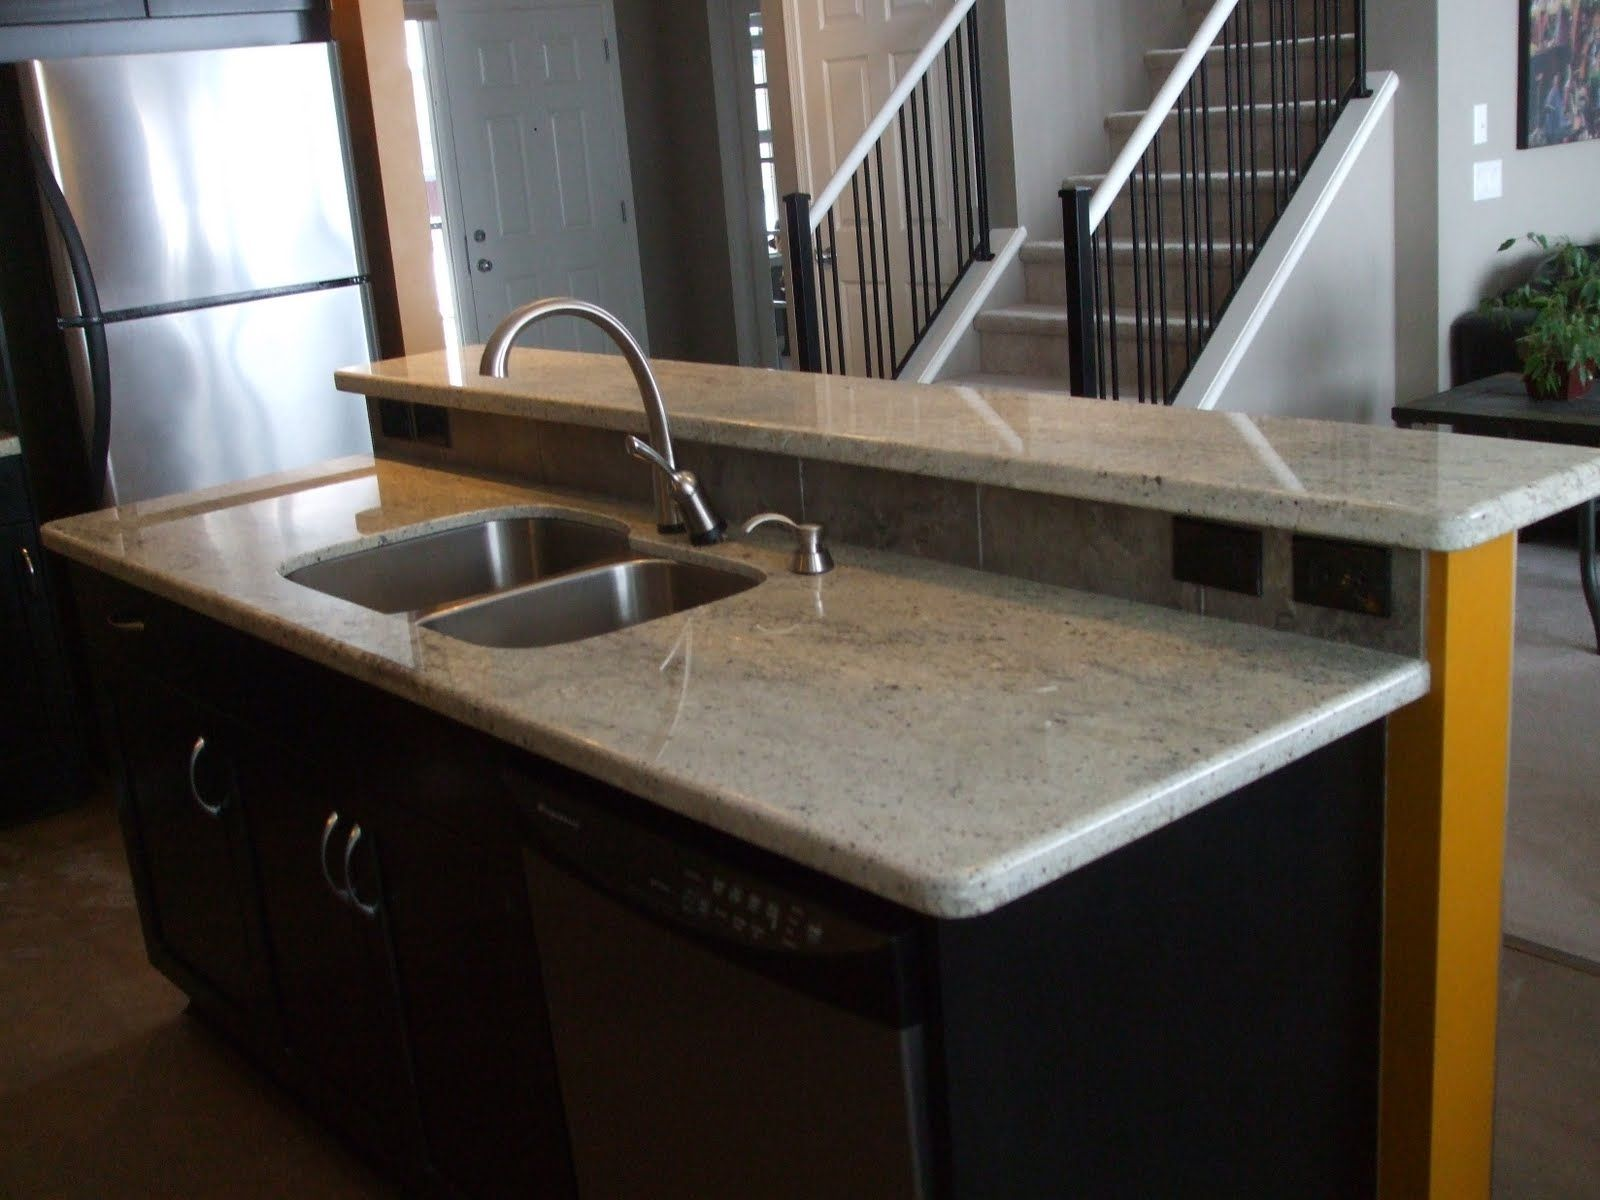 White Granite Kitchen Sink Illustration Of Kashmir White Granite Countertops Showcasing